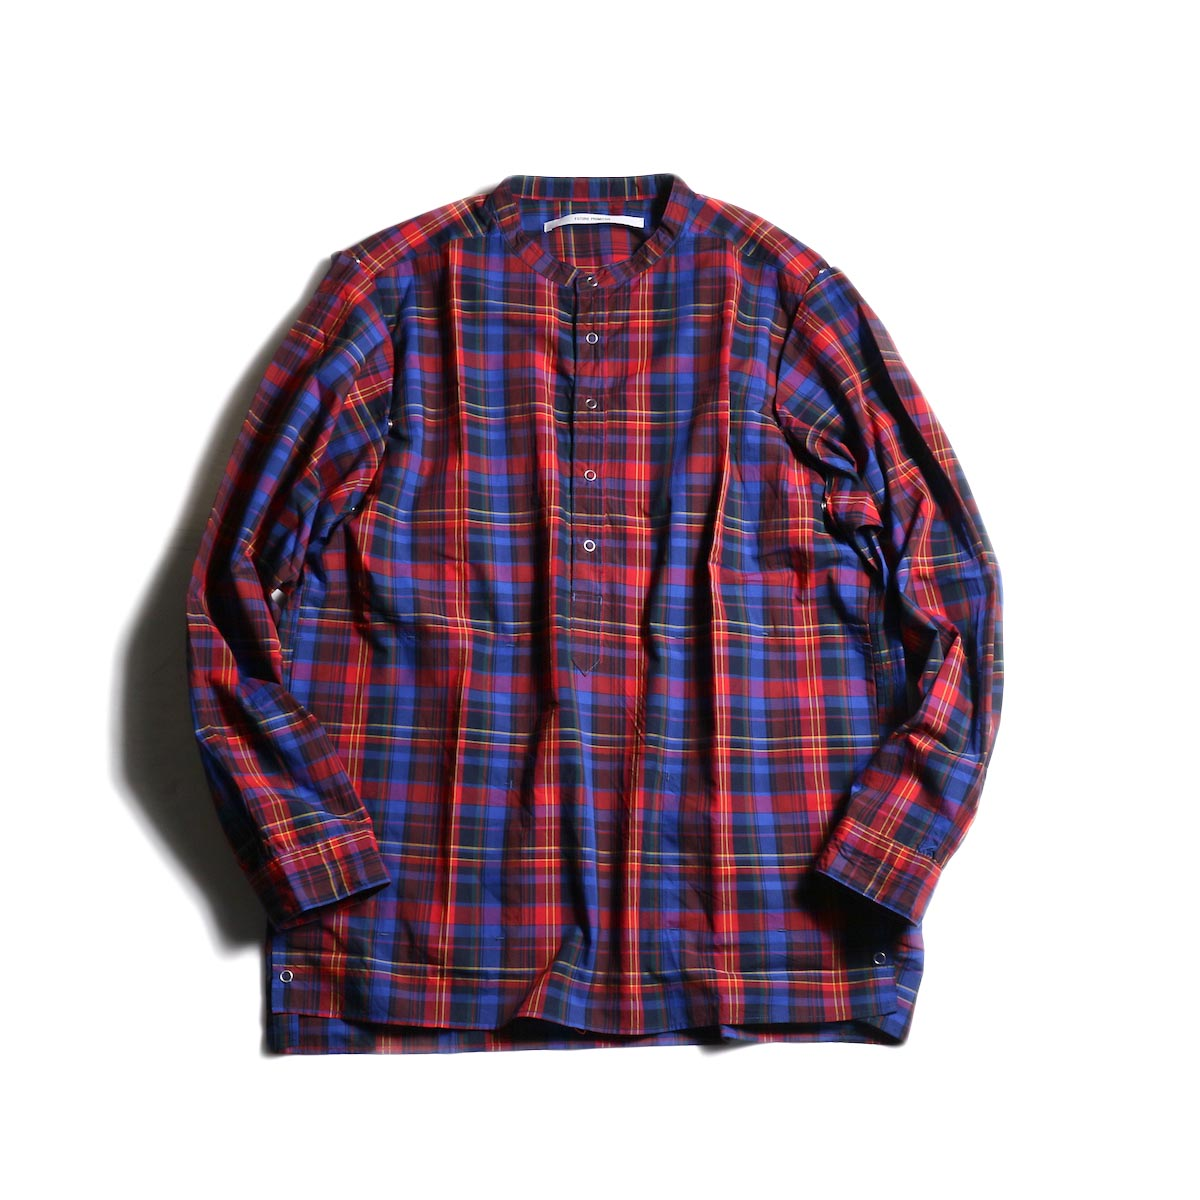 FUTURE PRIMITIVE / FP MODULAR SHIRT (MADRAS) -Blue/Red